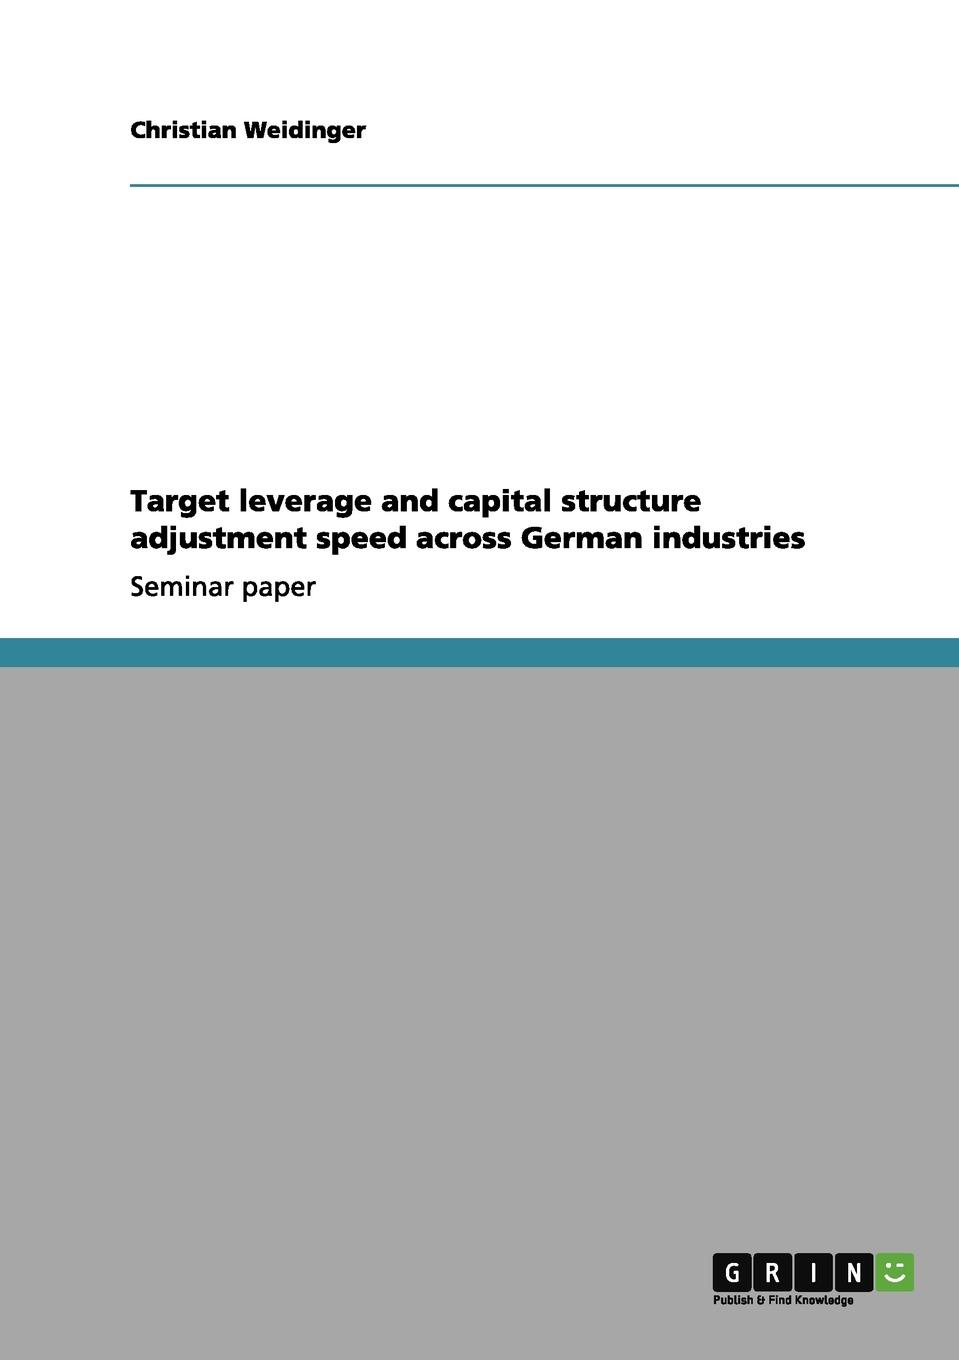 Christian Weidinger Target leverage and capital structure adjustment speed across German industries gerald s martin capital structure and corporate financing decisions theory evidence and practice